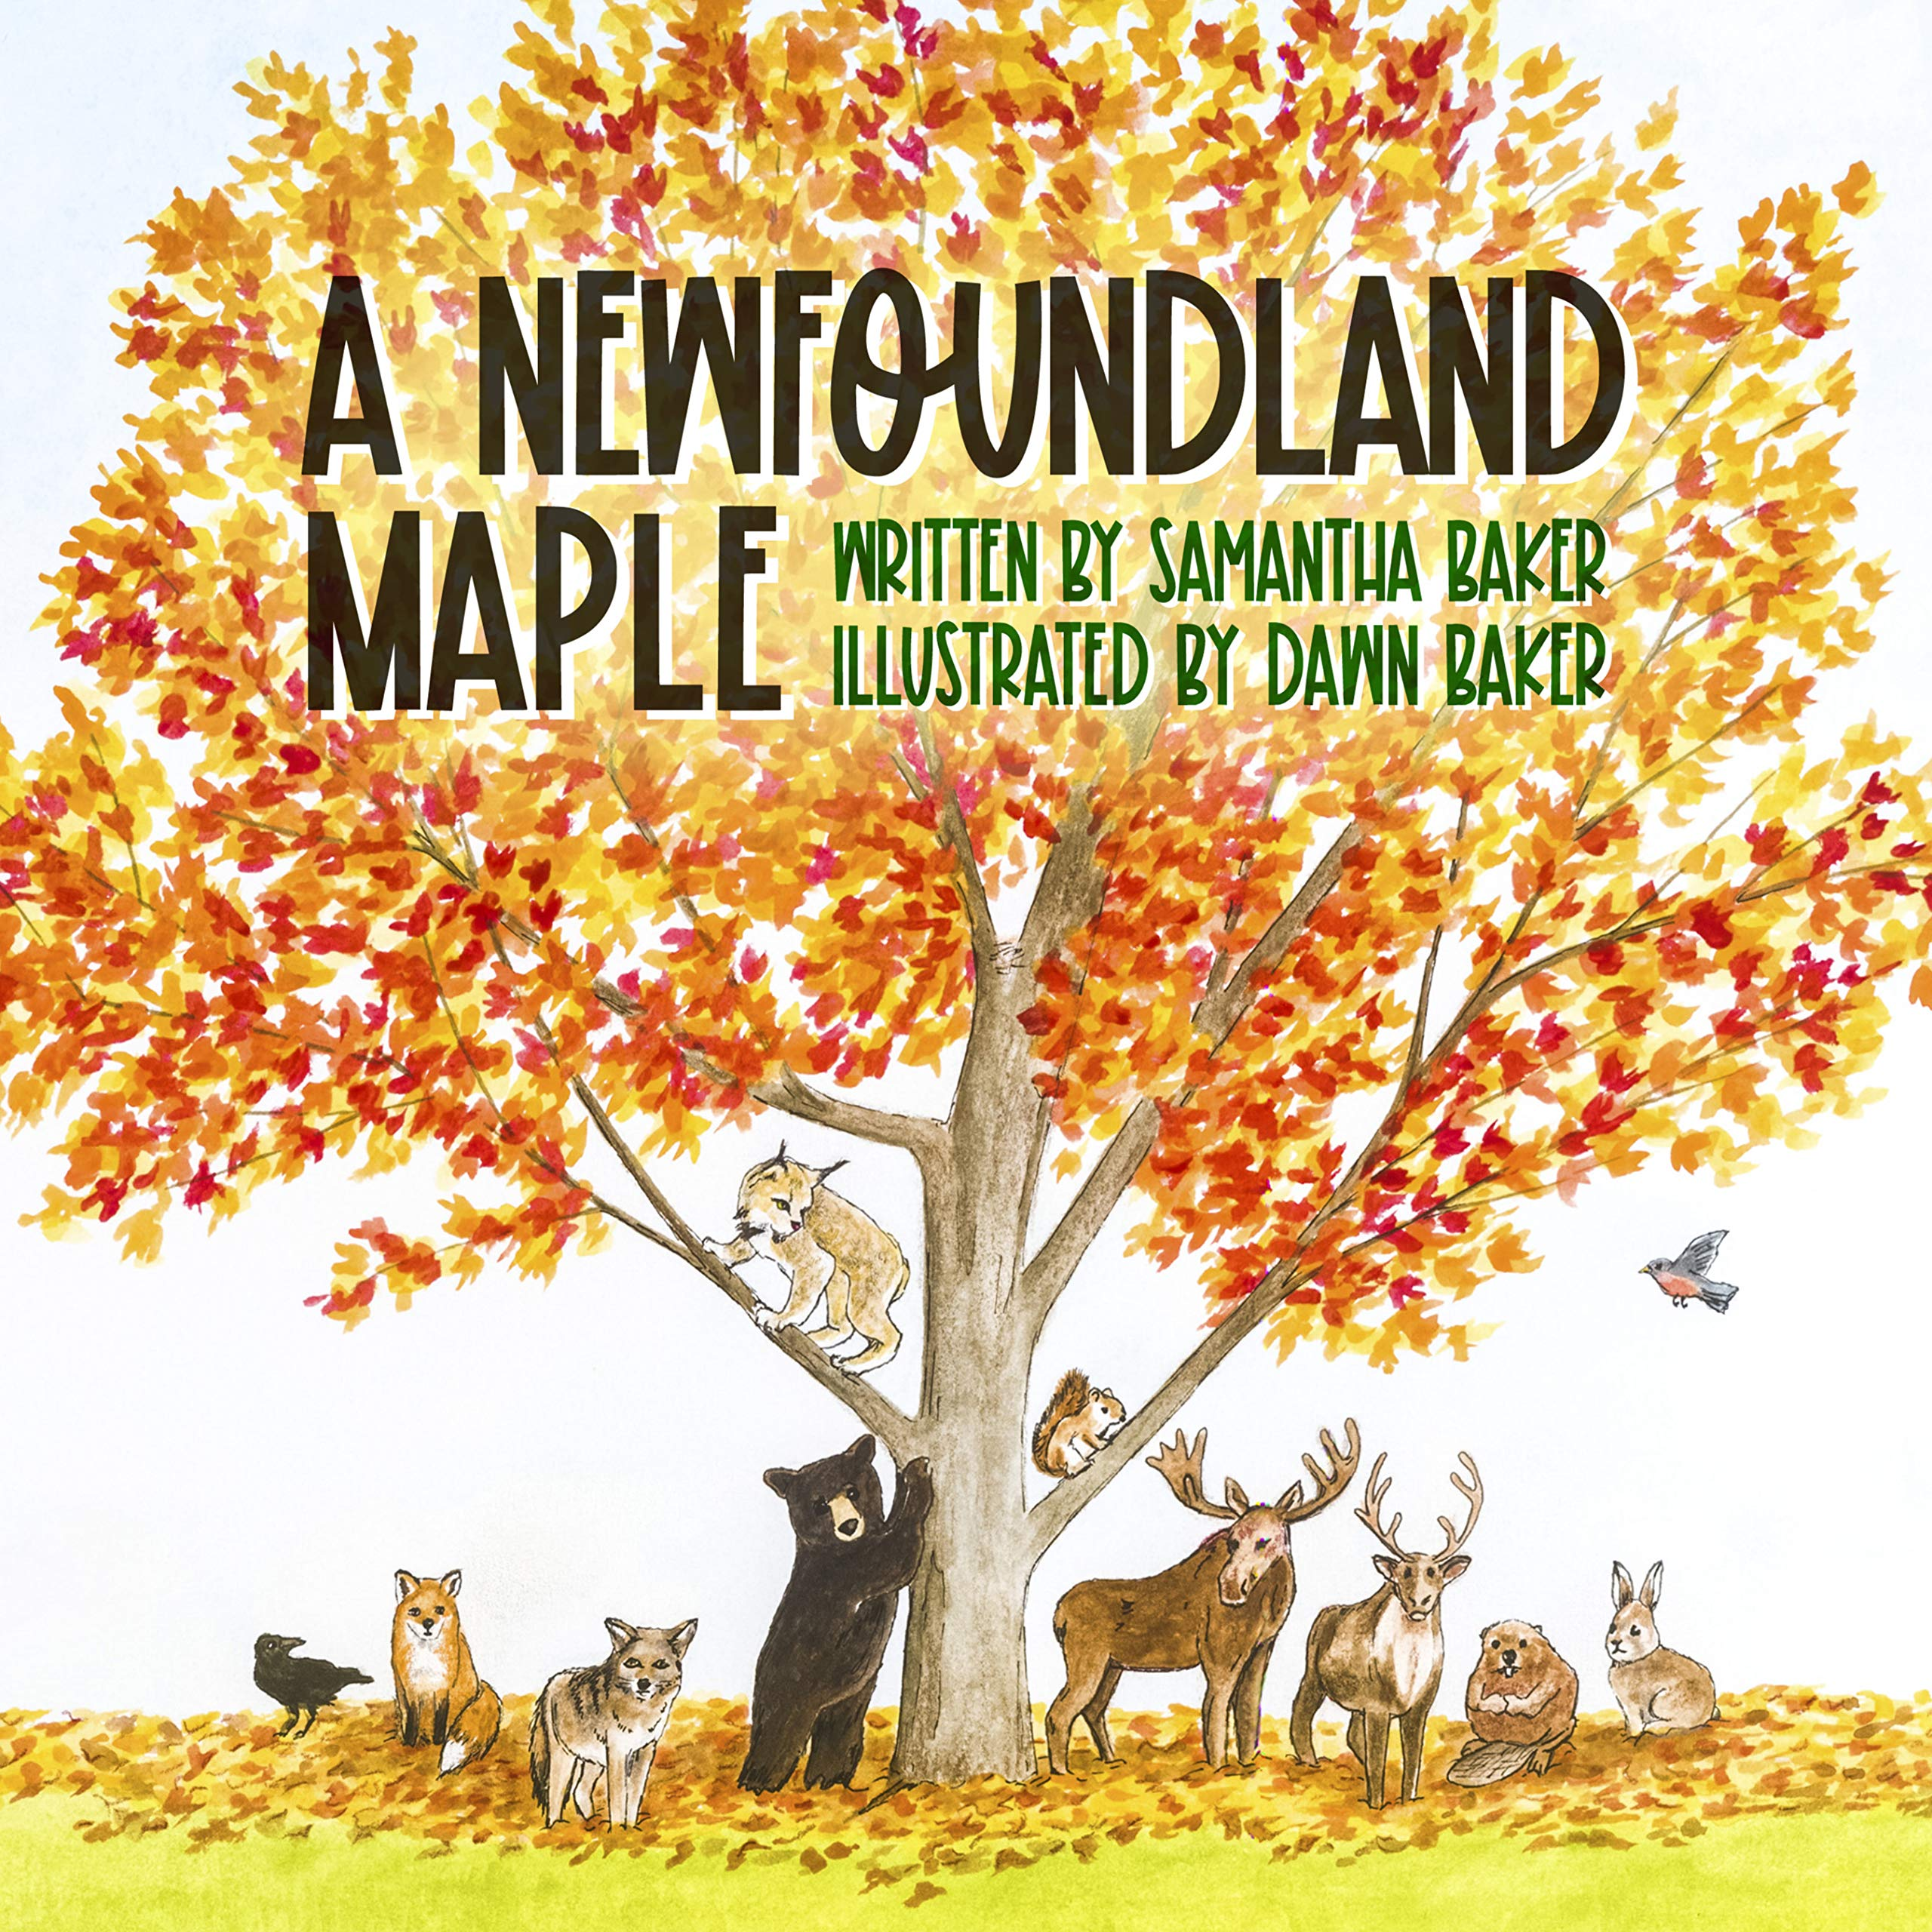 A Newfoundland Maple